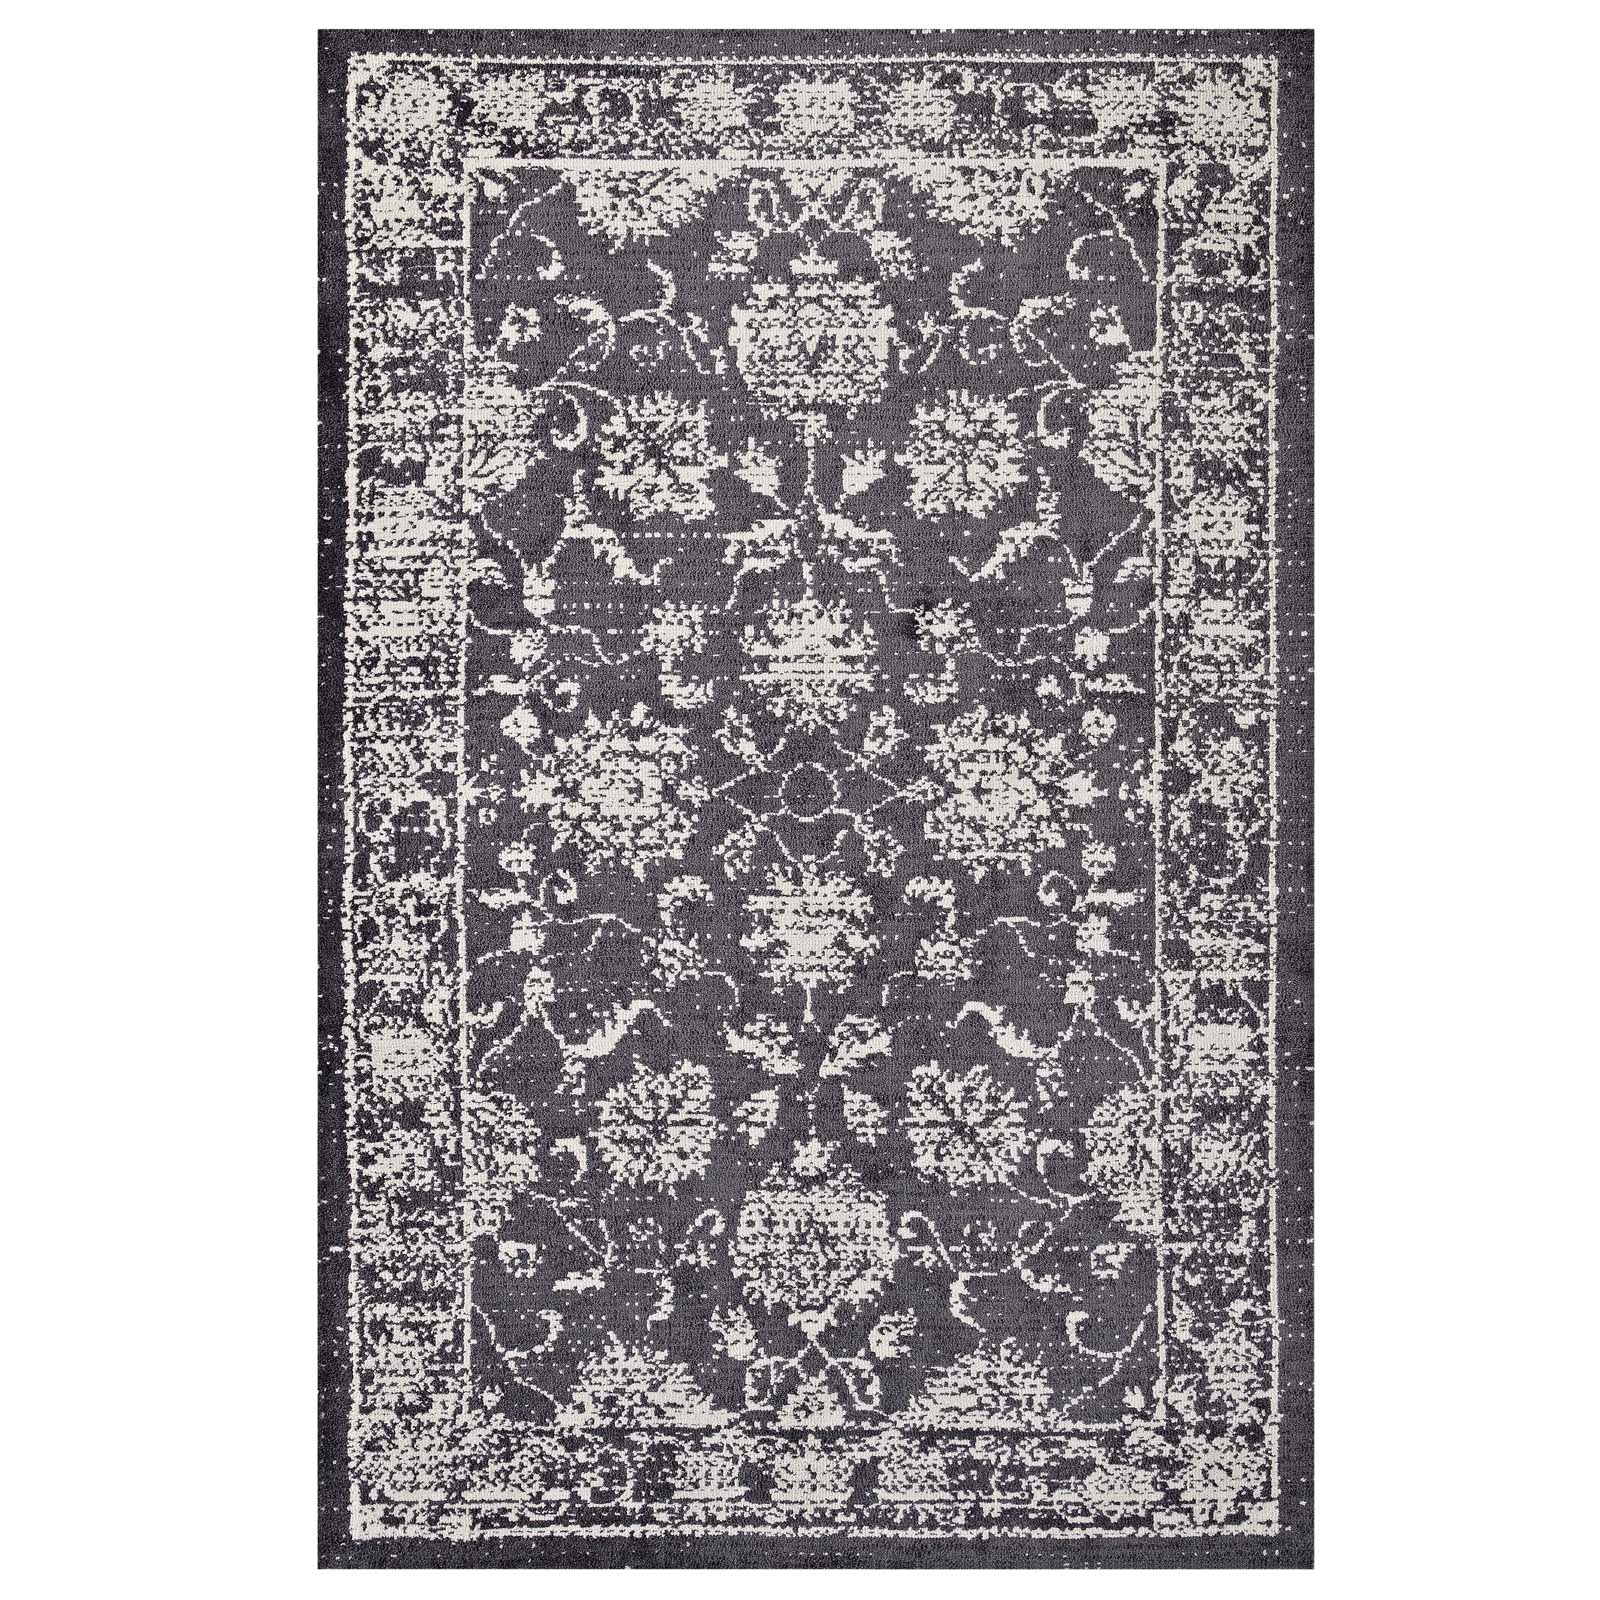 Kazia Distressed Floral Lattice 5x8 Area Rug Dark Gray and Ivory R-1020A-58